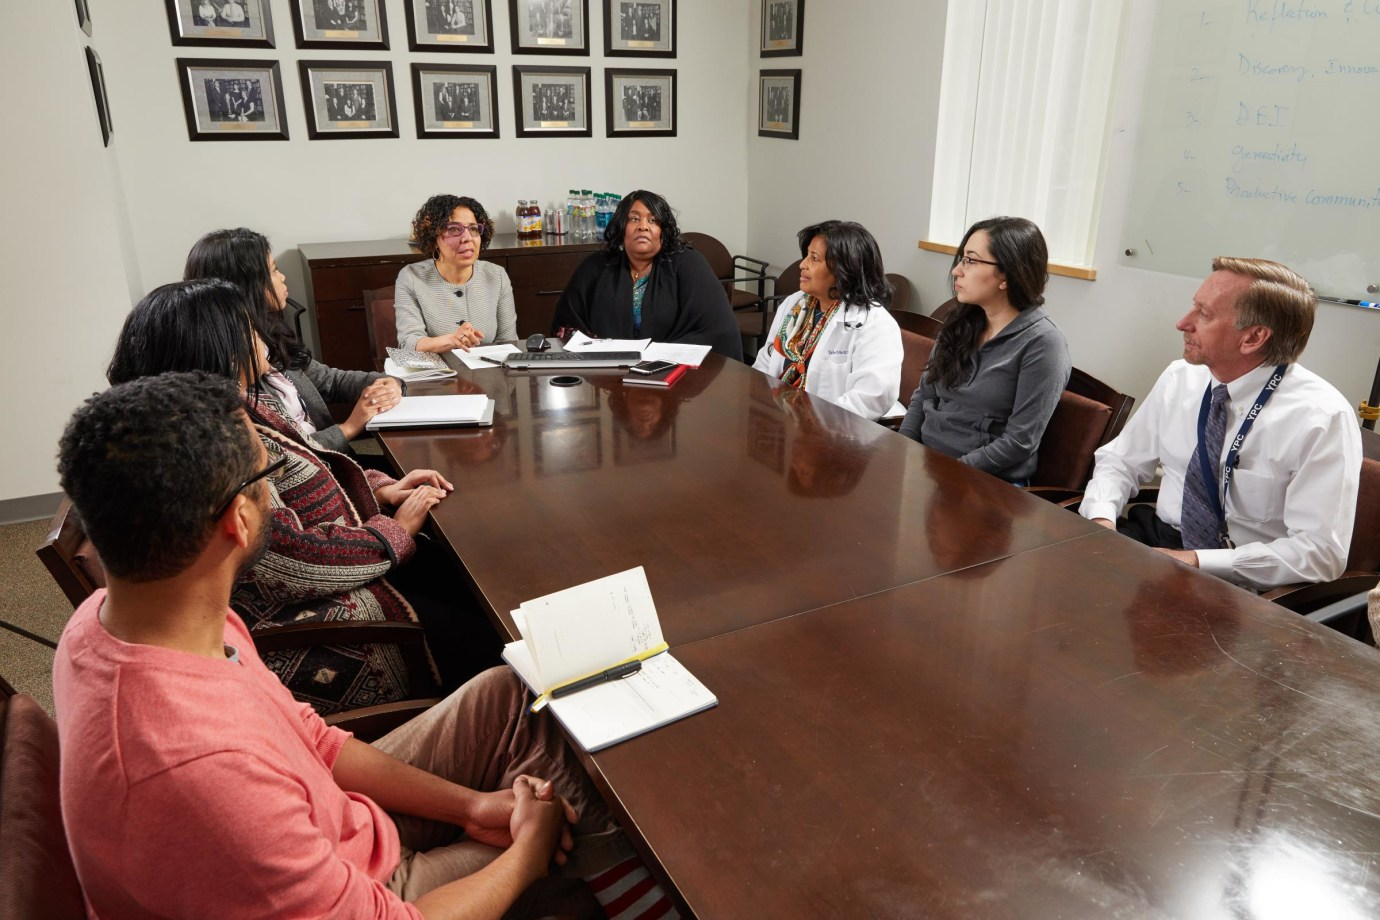 The Diversity Committee meets on a monthly basis to discuss recruitment initiatives within the Department of Internal Medicine.